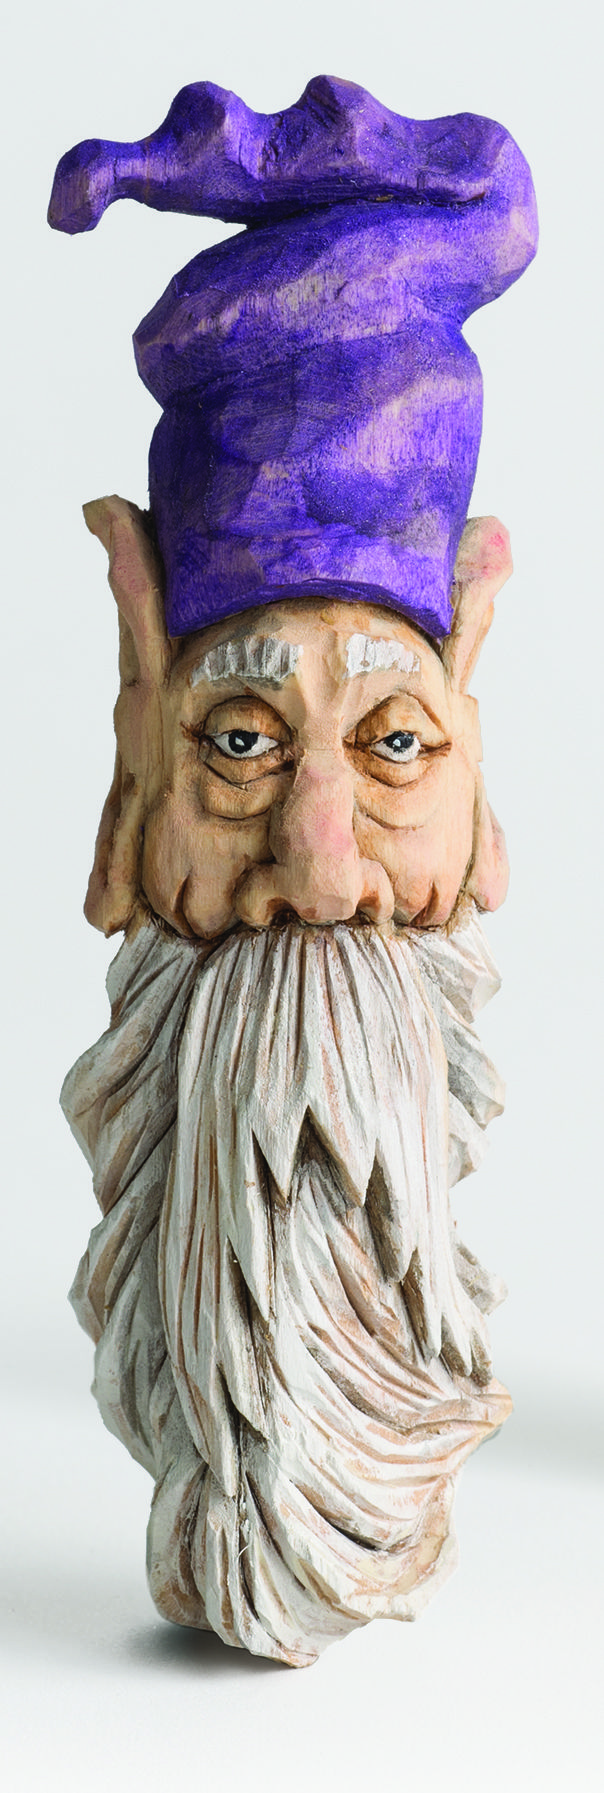 This little wizard was carved by Mike Pounders. Learn more ...